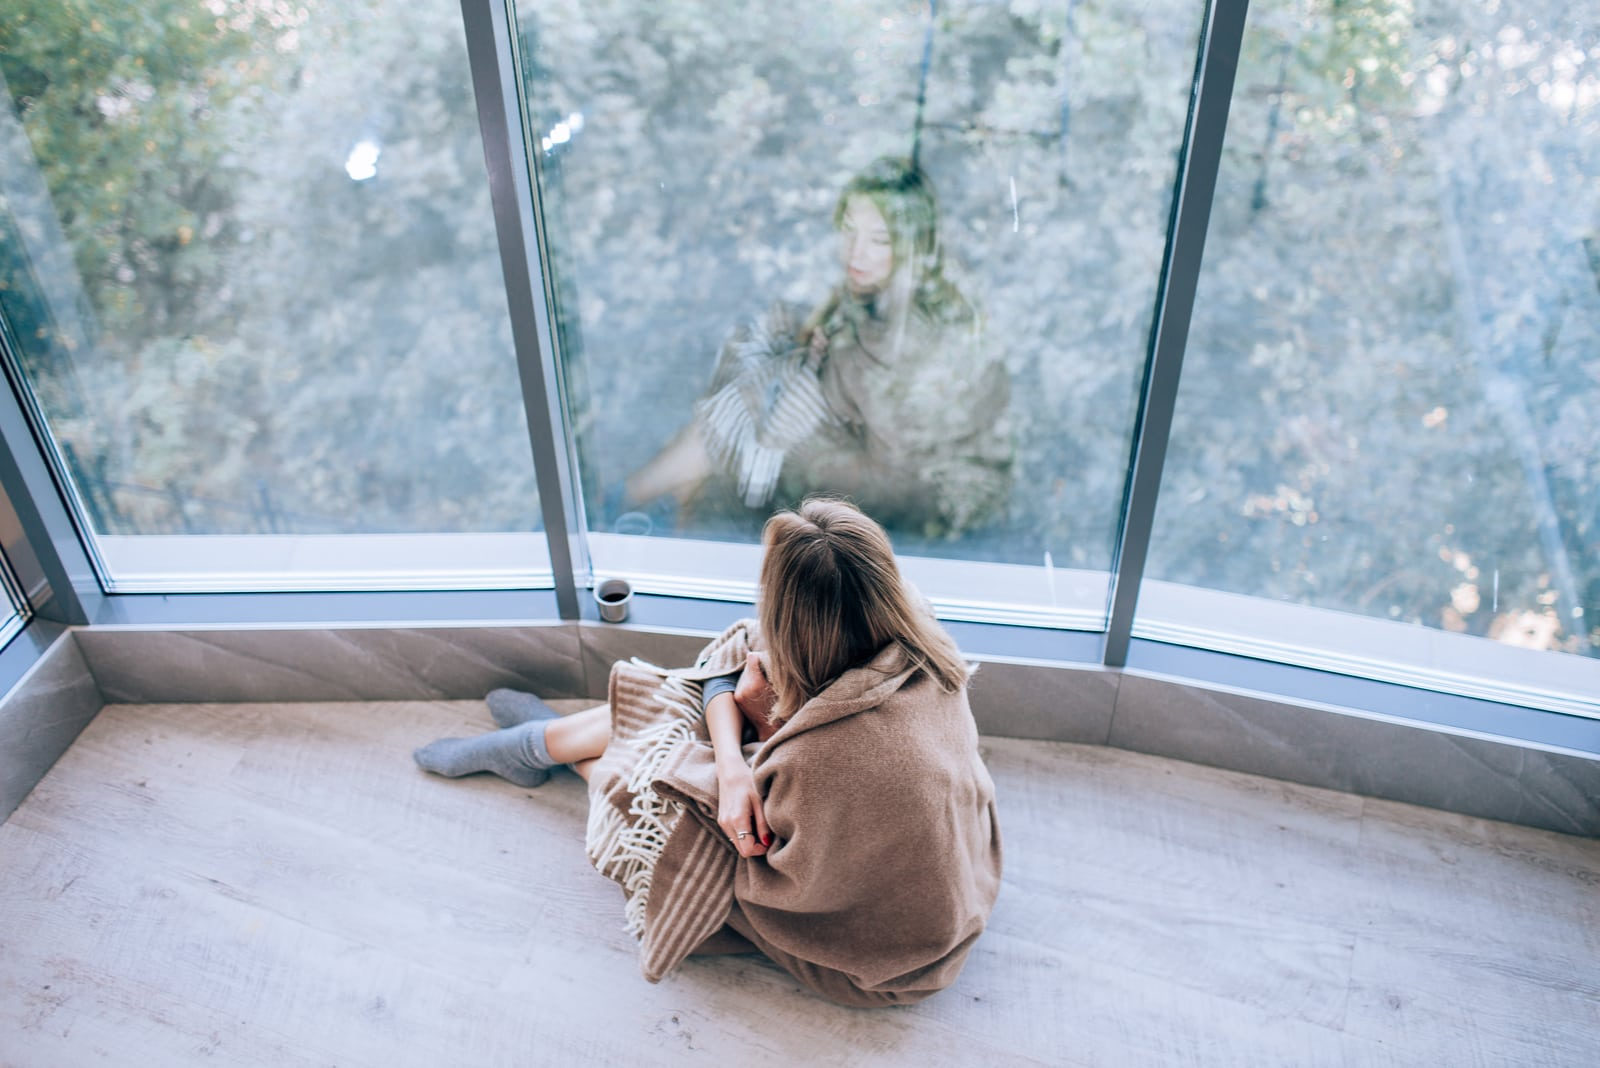 a woman sits on the floor by the window and drinks coffee